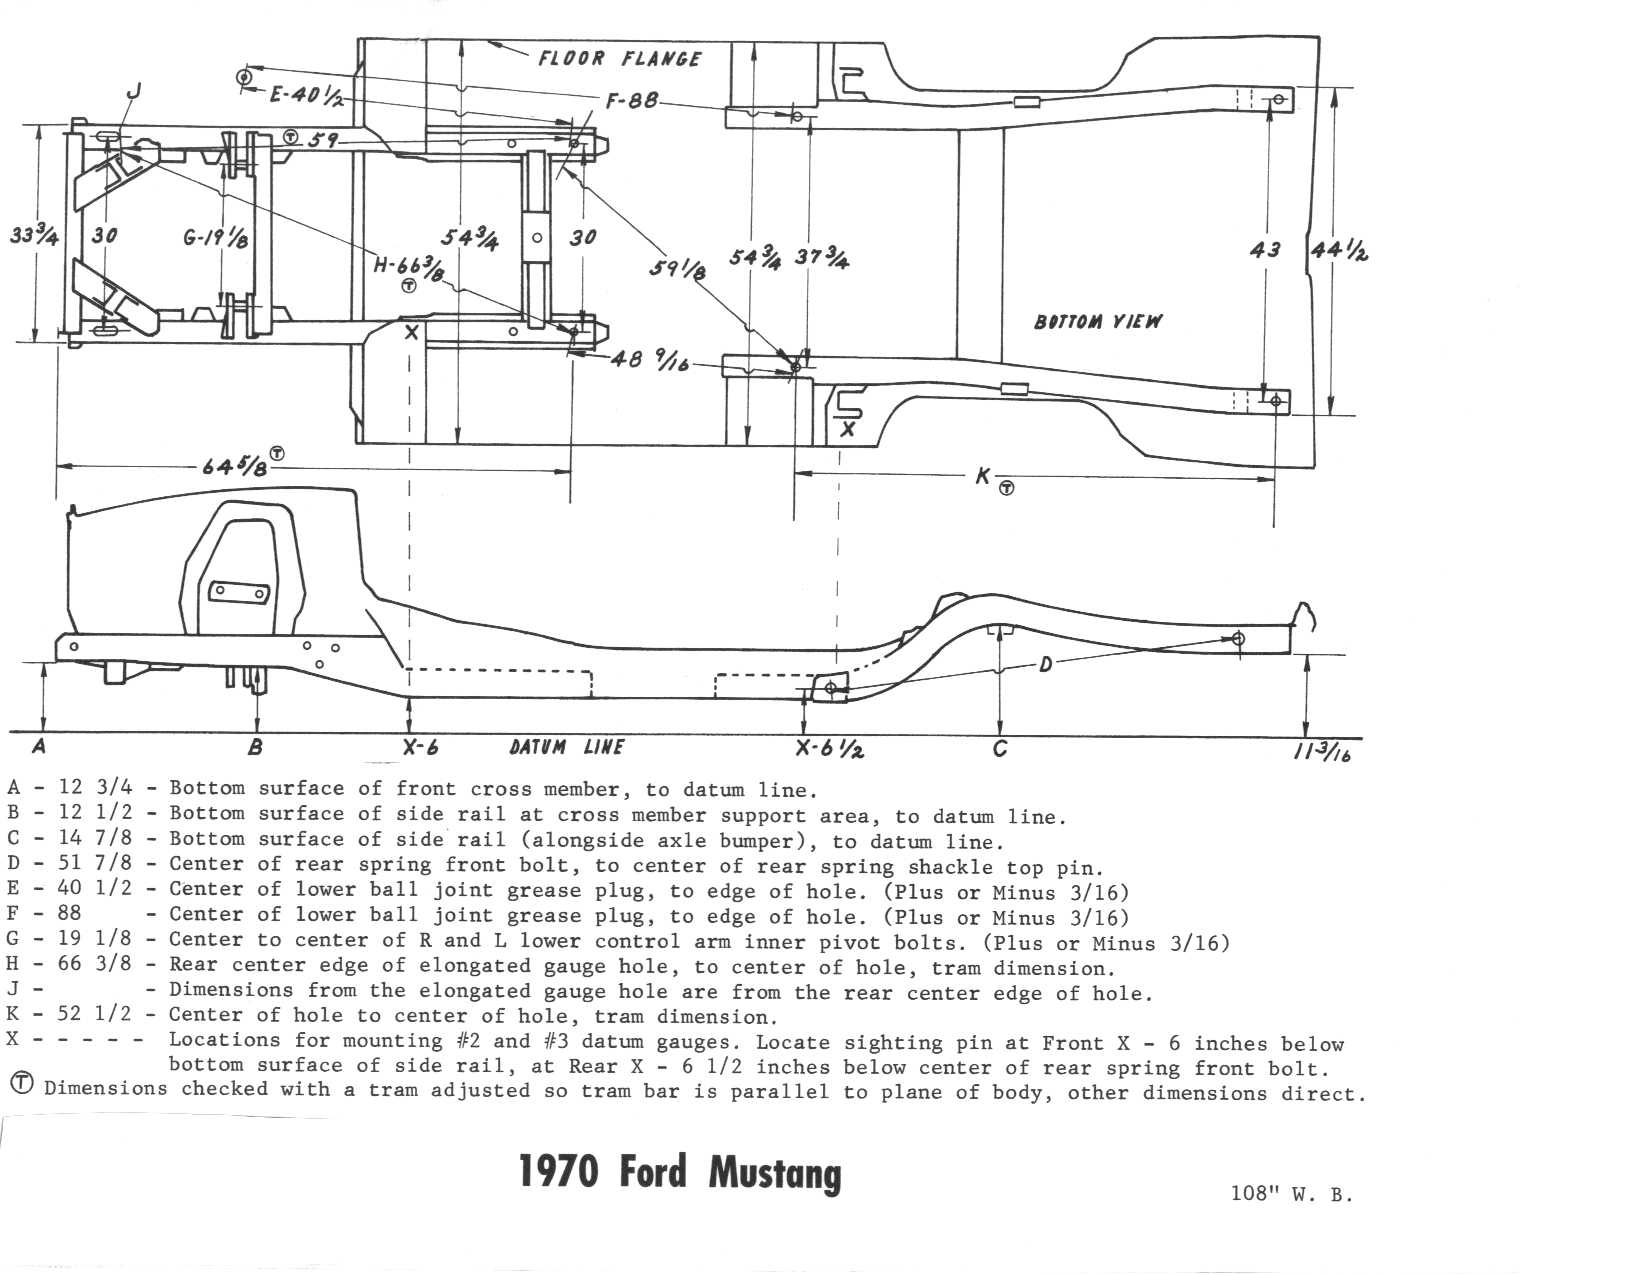 1969 Mustang Fuse Box Diagram Electrical Wiring Diagrams 2012 Impala Library Brake Lamp